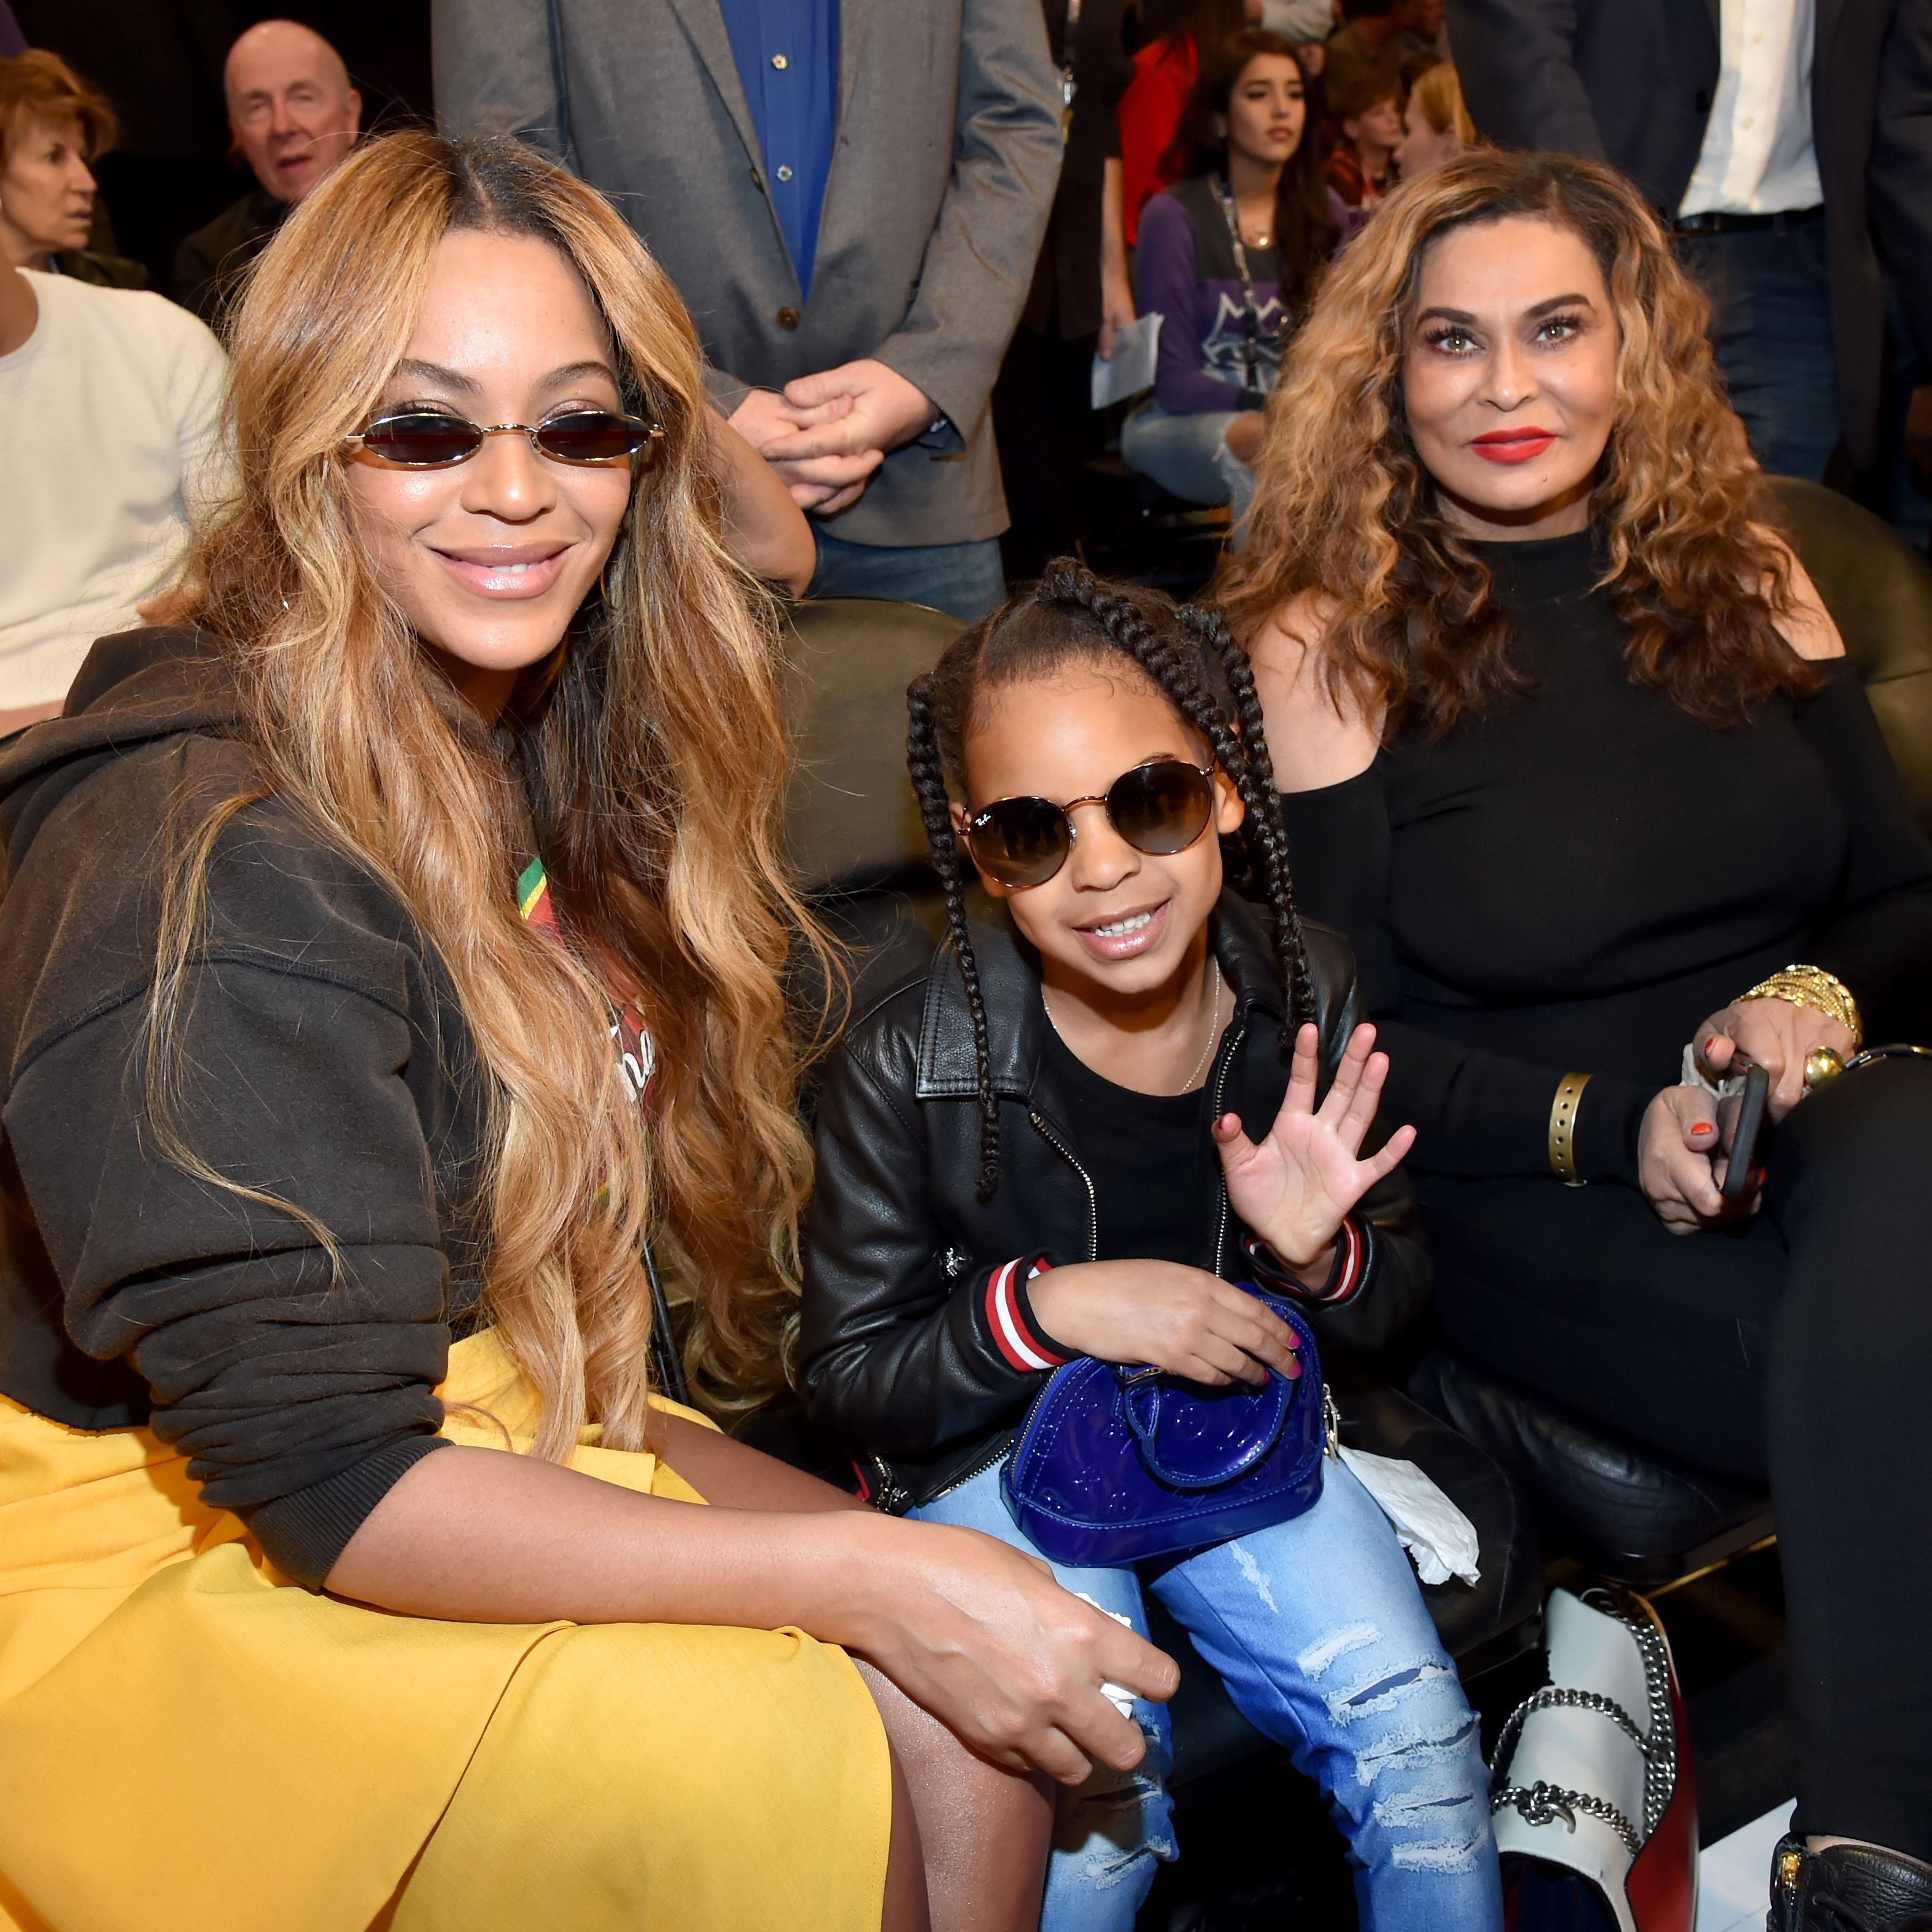 This Video of Blue Ivy Carter Telling Beyoncé's Mom a Corny Joke Is the Best Thing